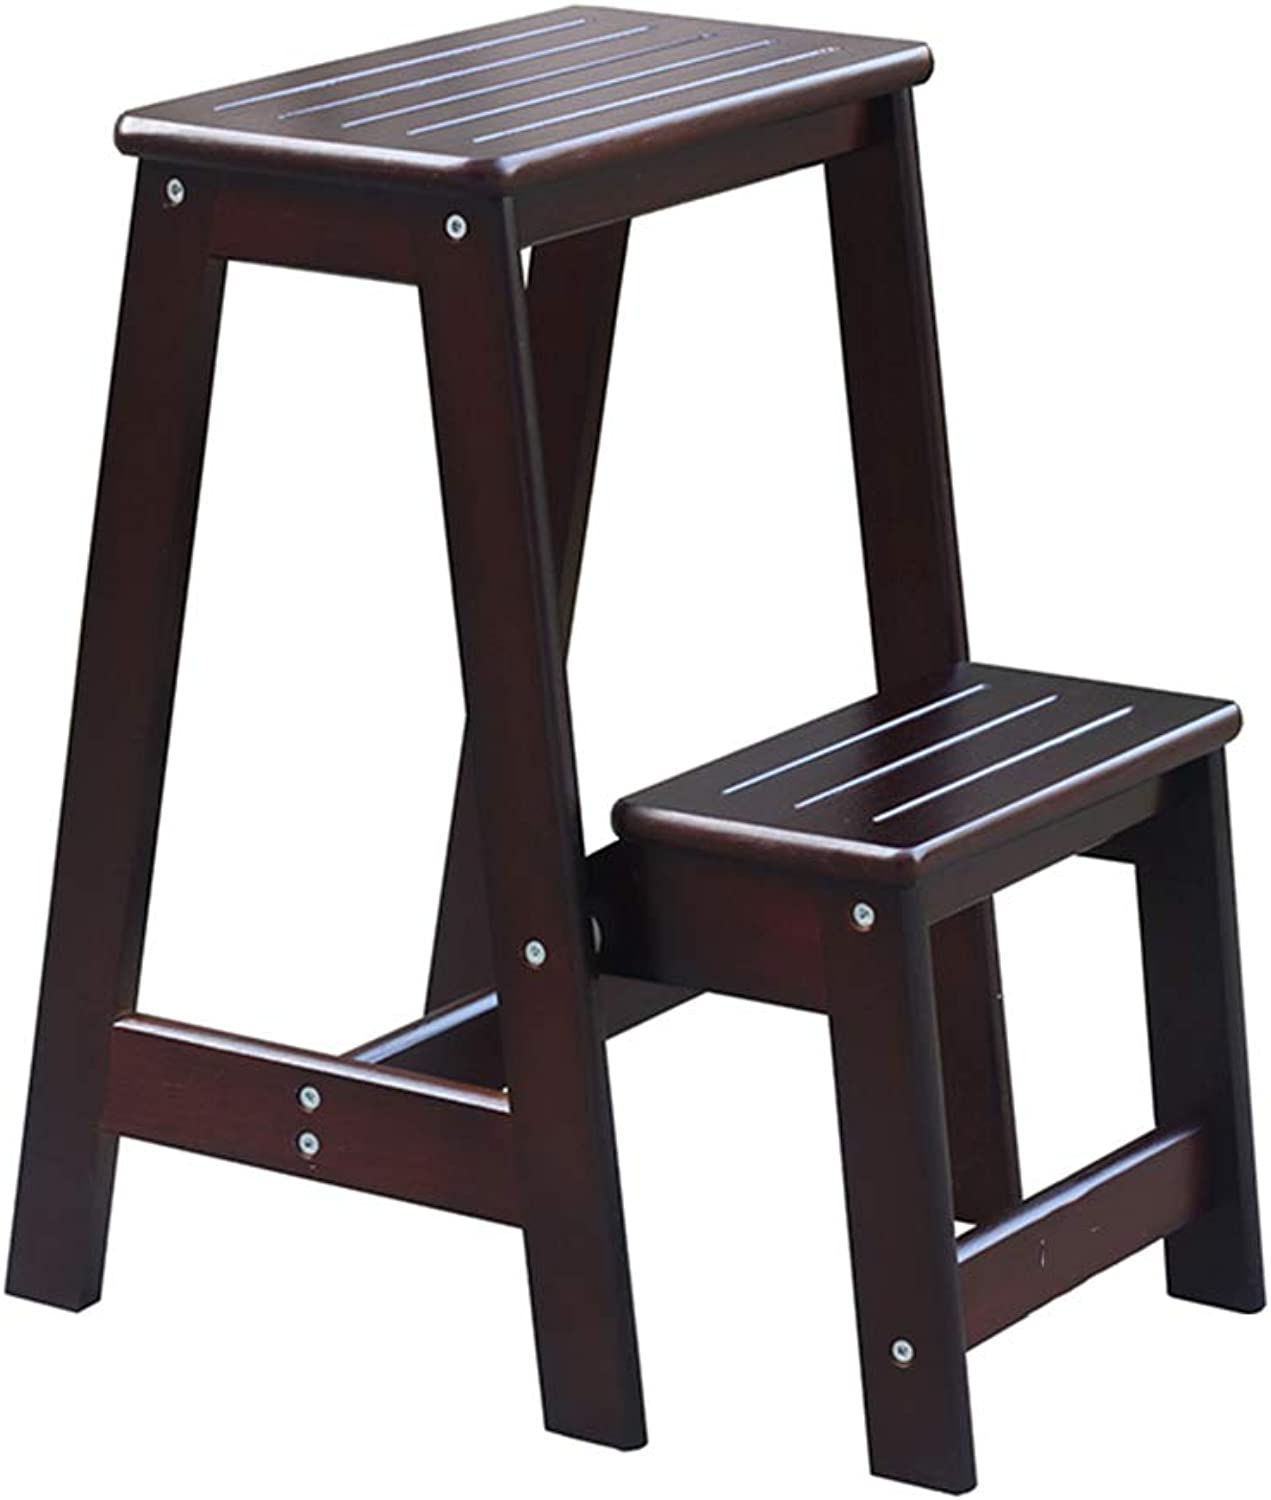 PENGFEI Folding Ladder Stools Stairs Solid Wood 2-Step Stool Portable Multifunction Ascend The Pedal, 3 colors Furniture (color   Deep Walnut color, Size   29x33.5x55CM)